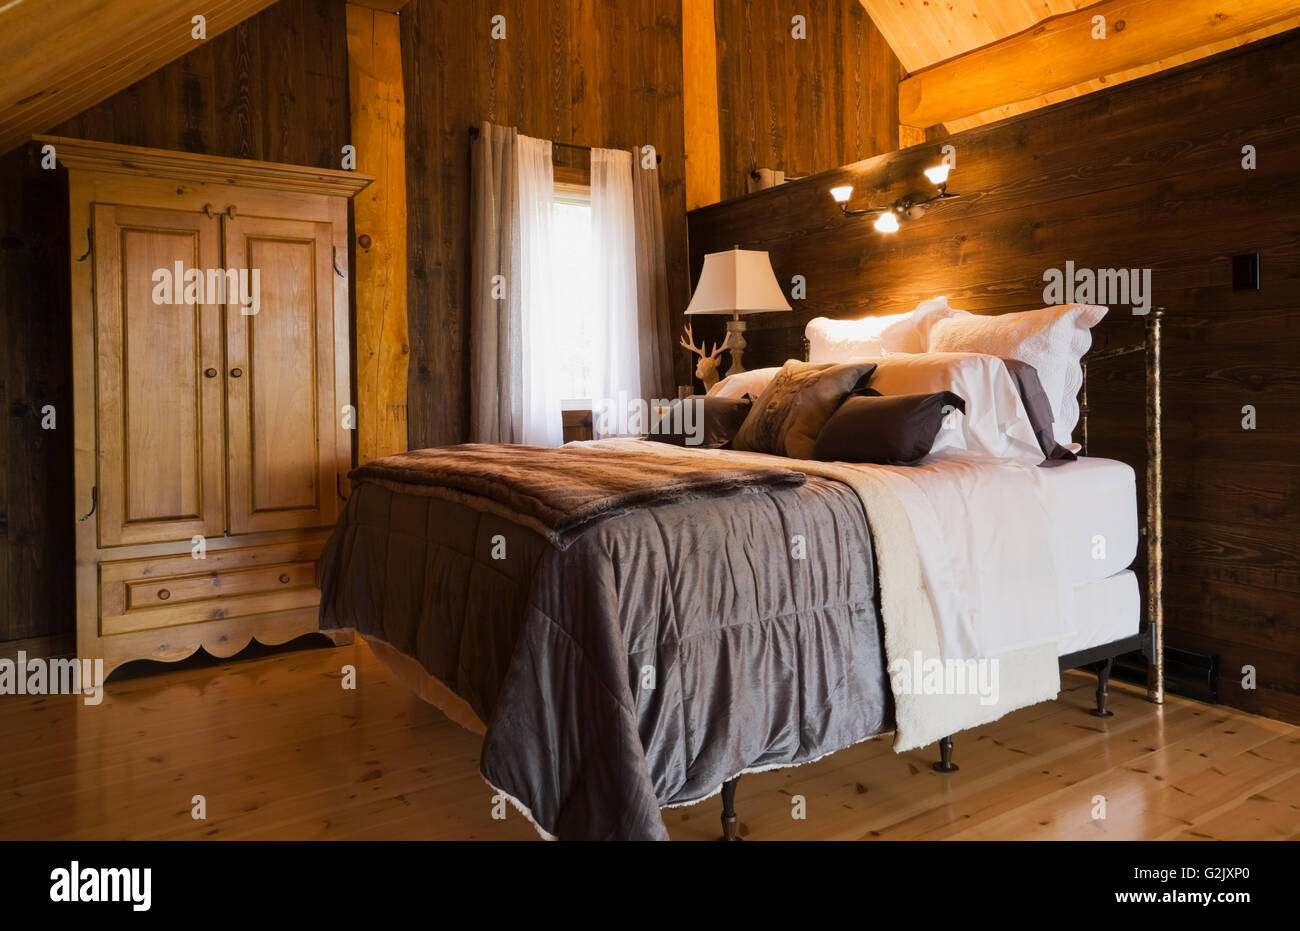 Quebec Bedroom Furniture Queen Size Bed Night Table On Mezzanine Inside A Luxurious Cottage